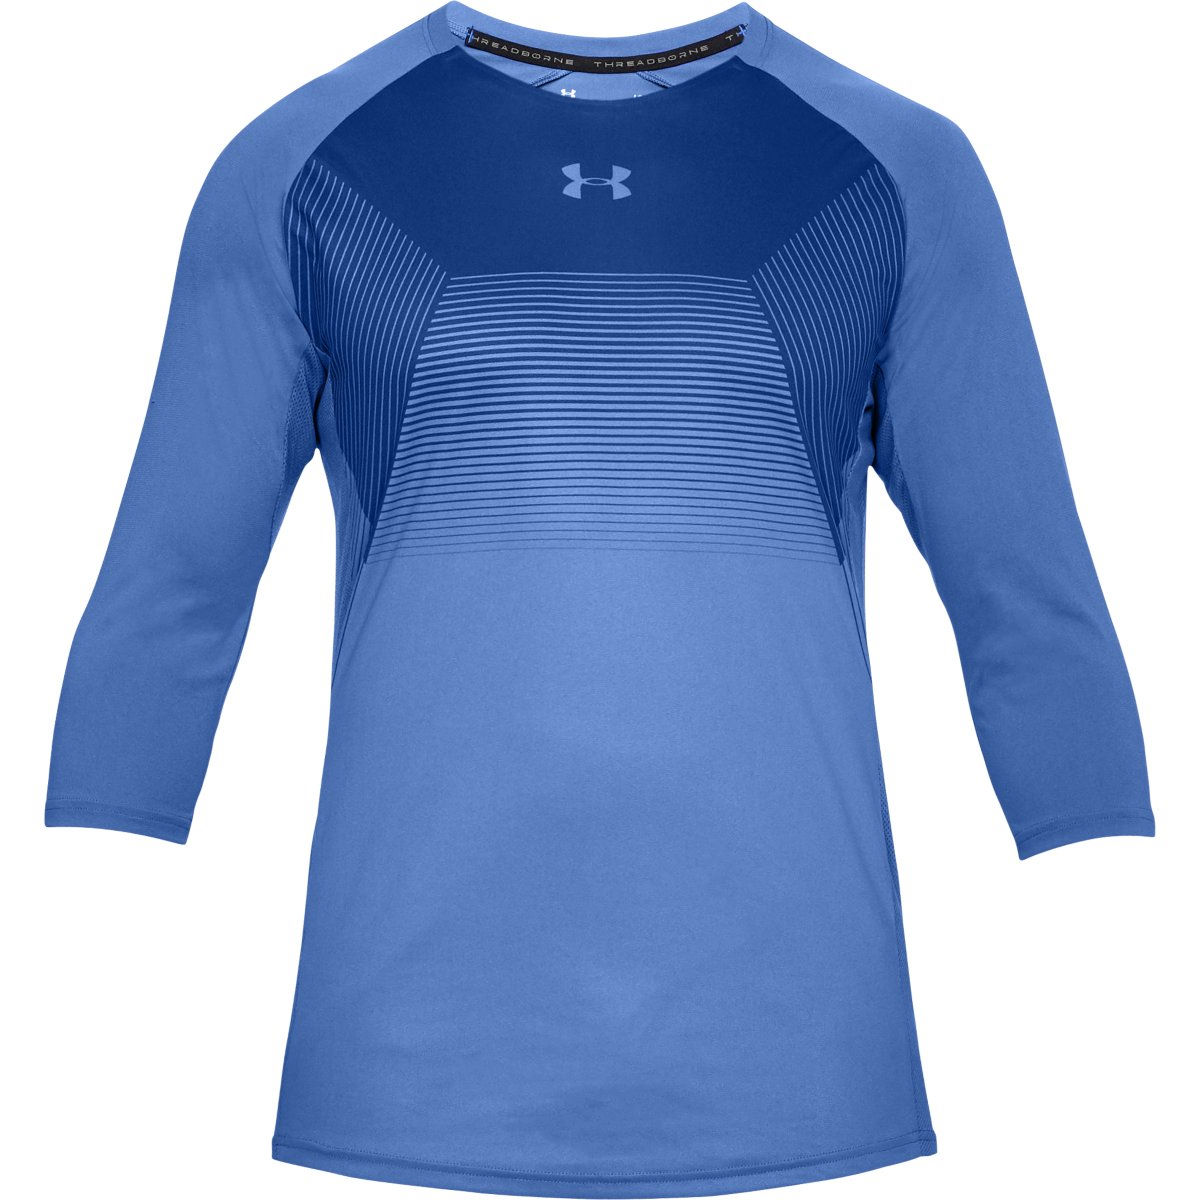 Camiseta de manga 3/4 Under Armour Threadborne Vanish - Camisetas de entrenamiento